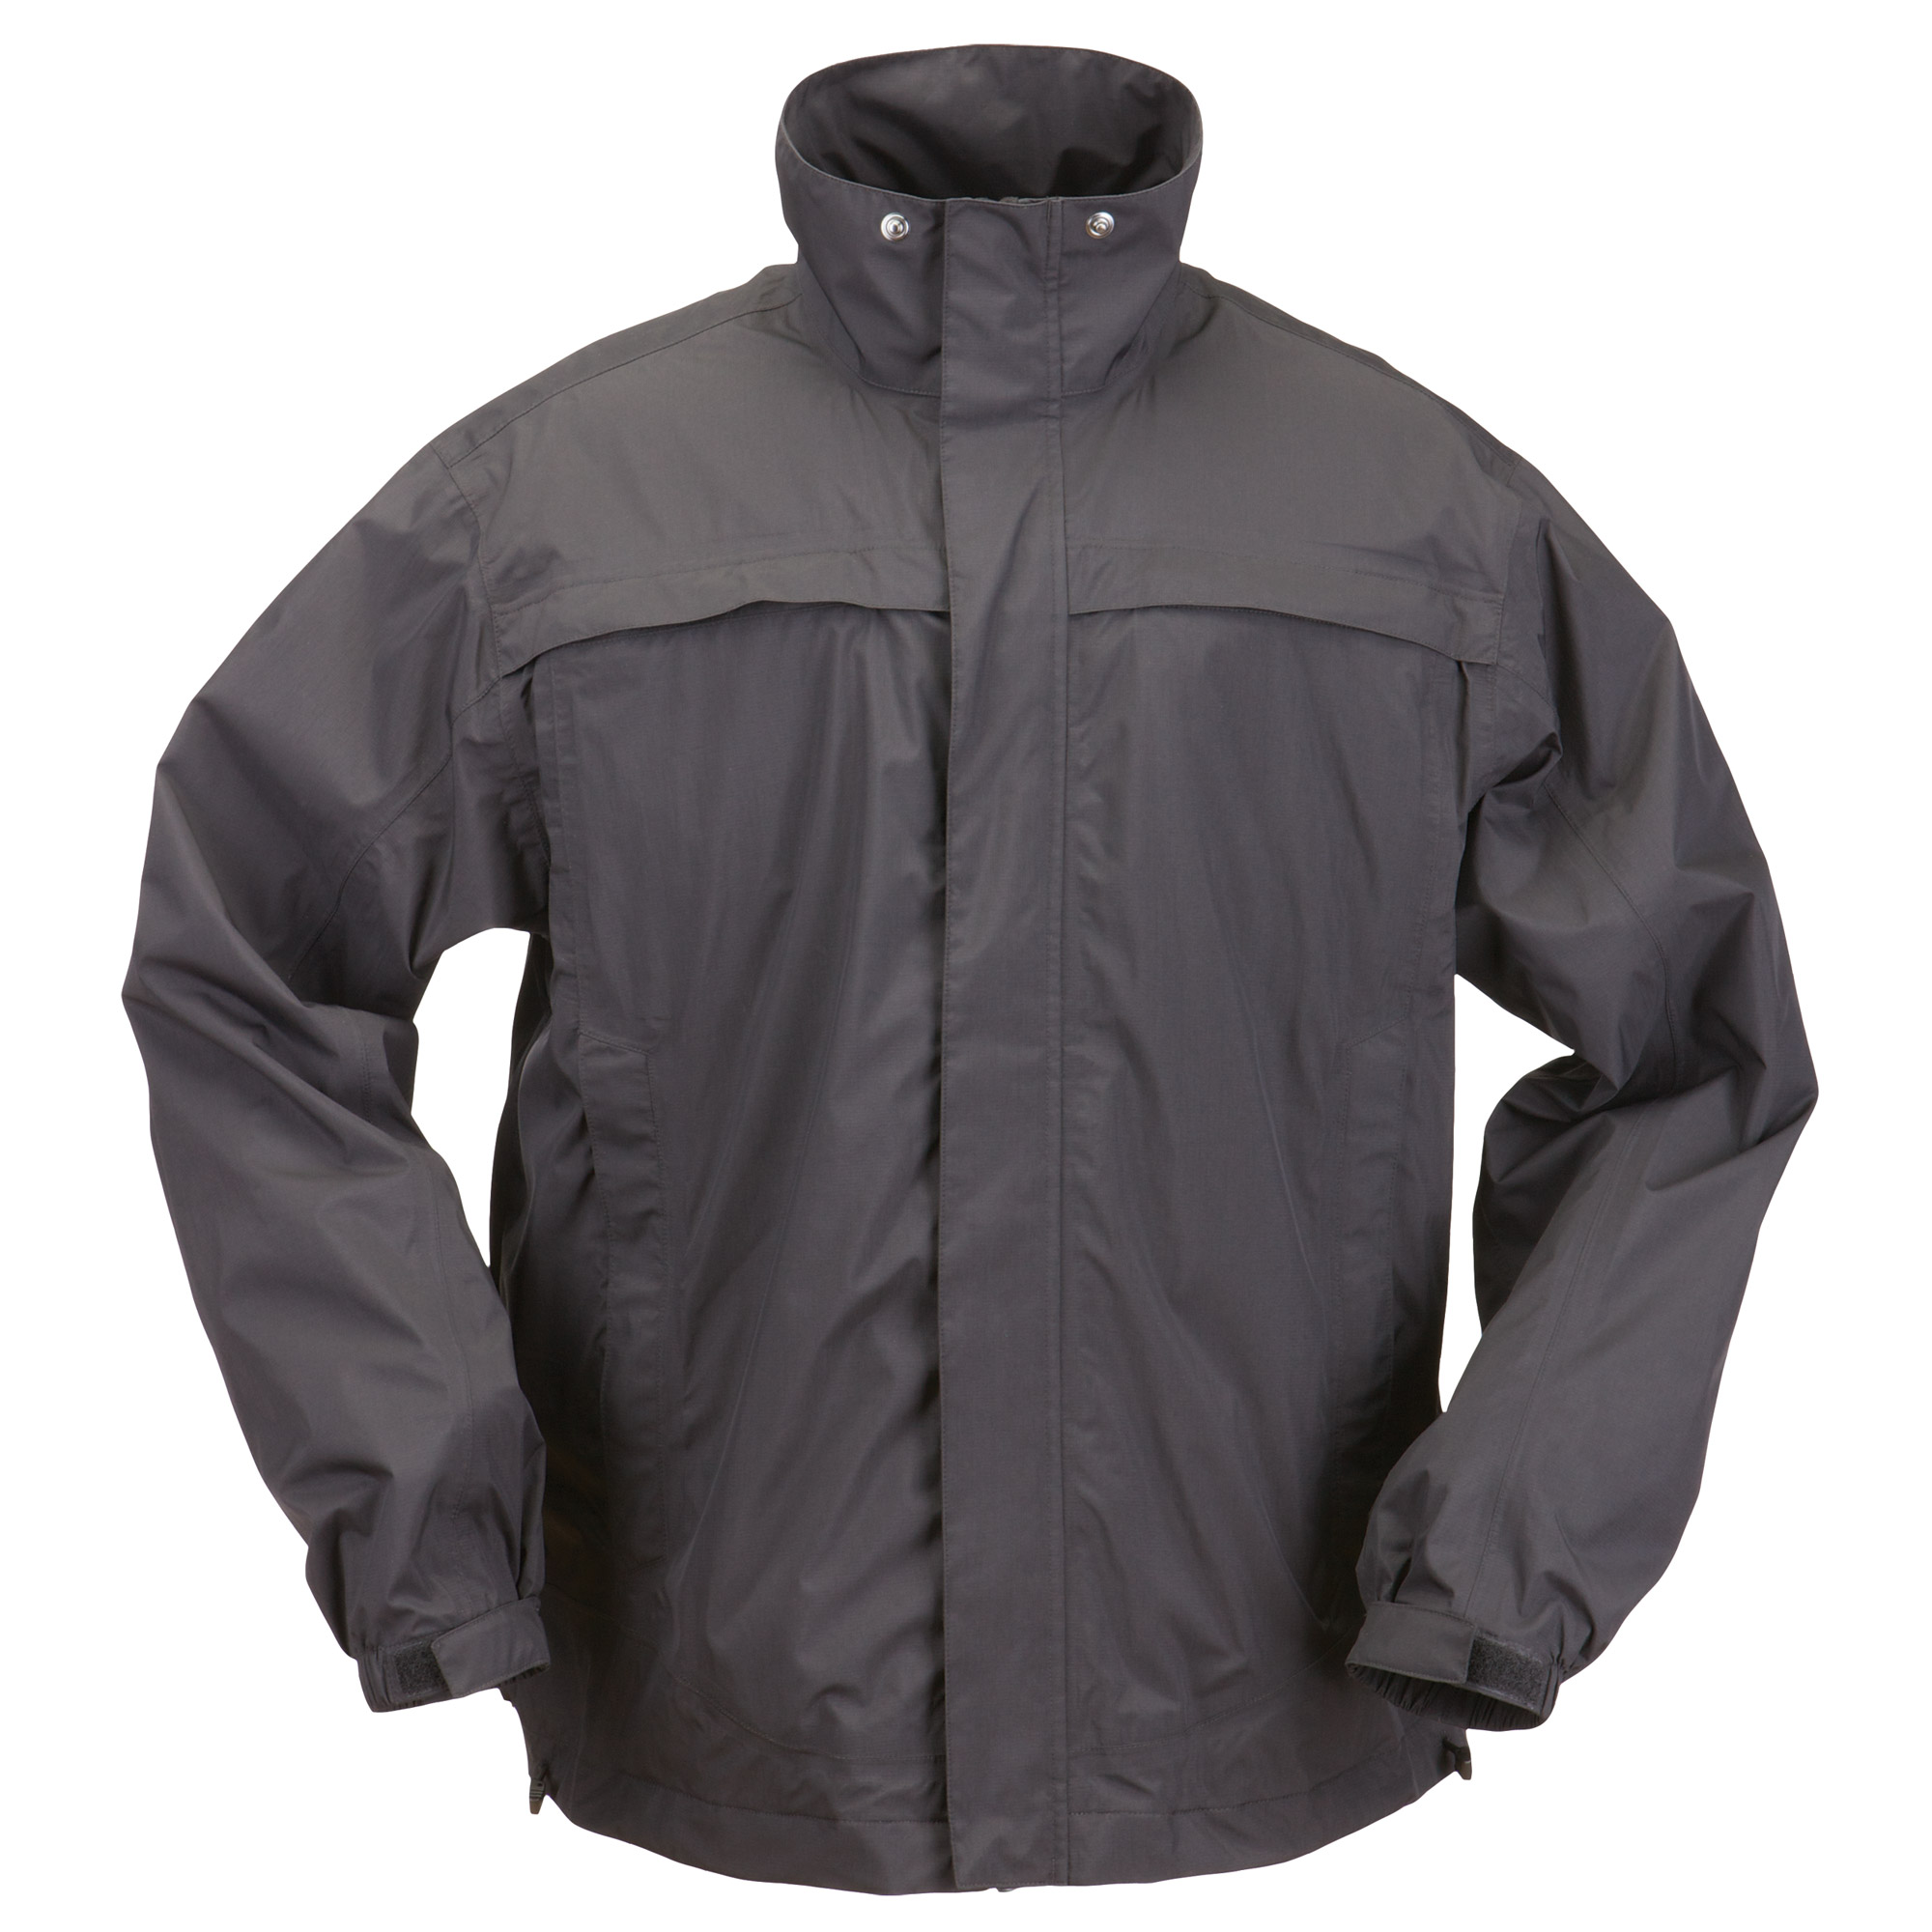 5.11 Tactical Men's TAC DRY Rain Shell (Gray)